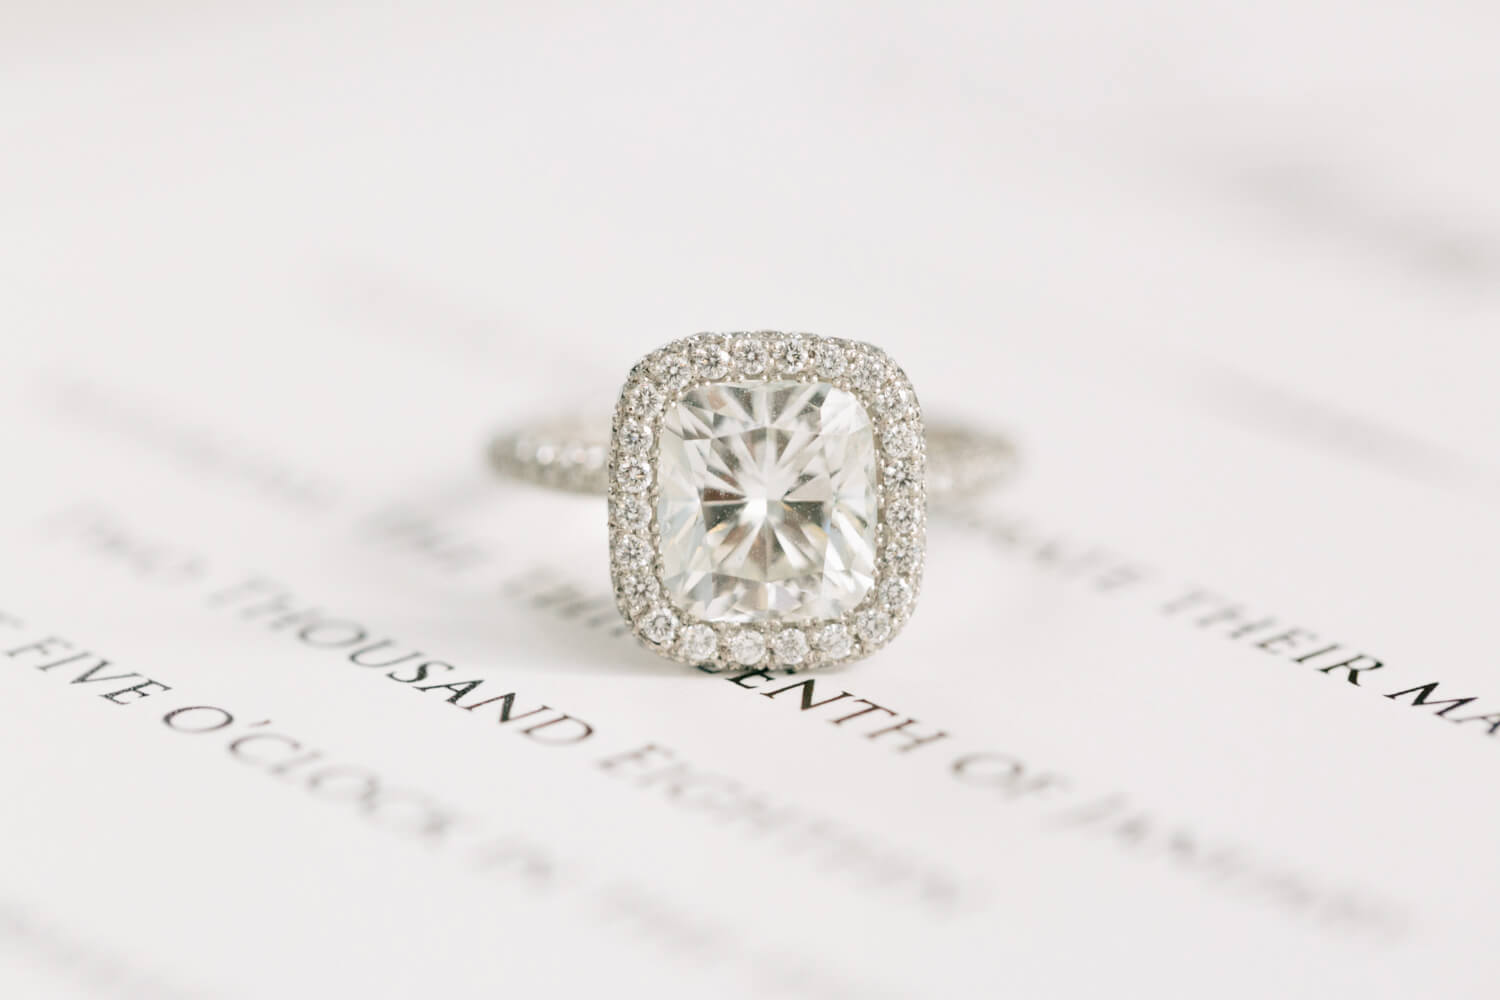 Silver ring with a solitary diamond